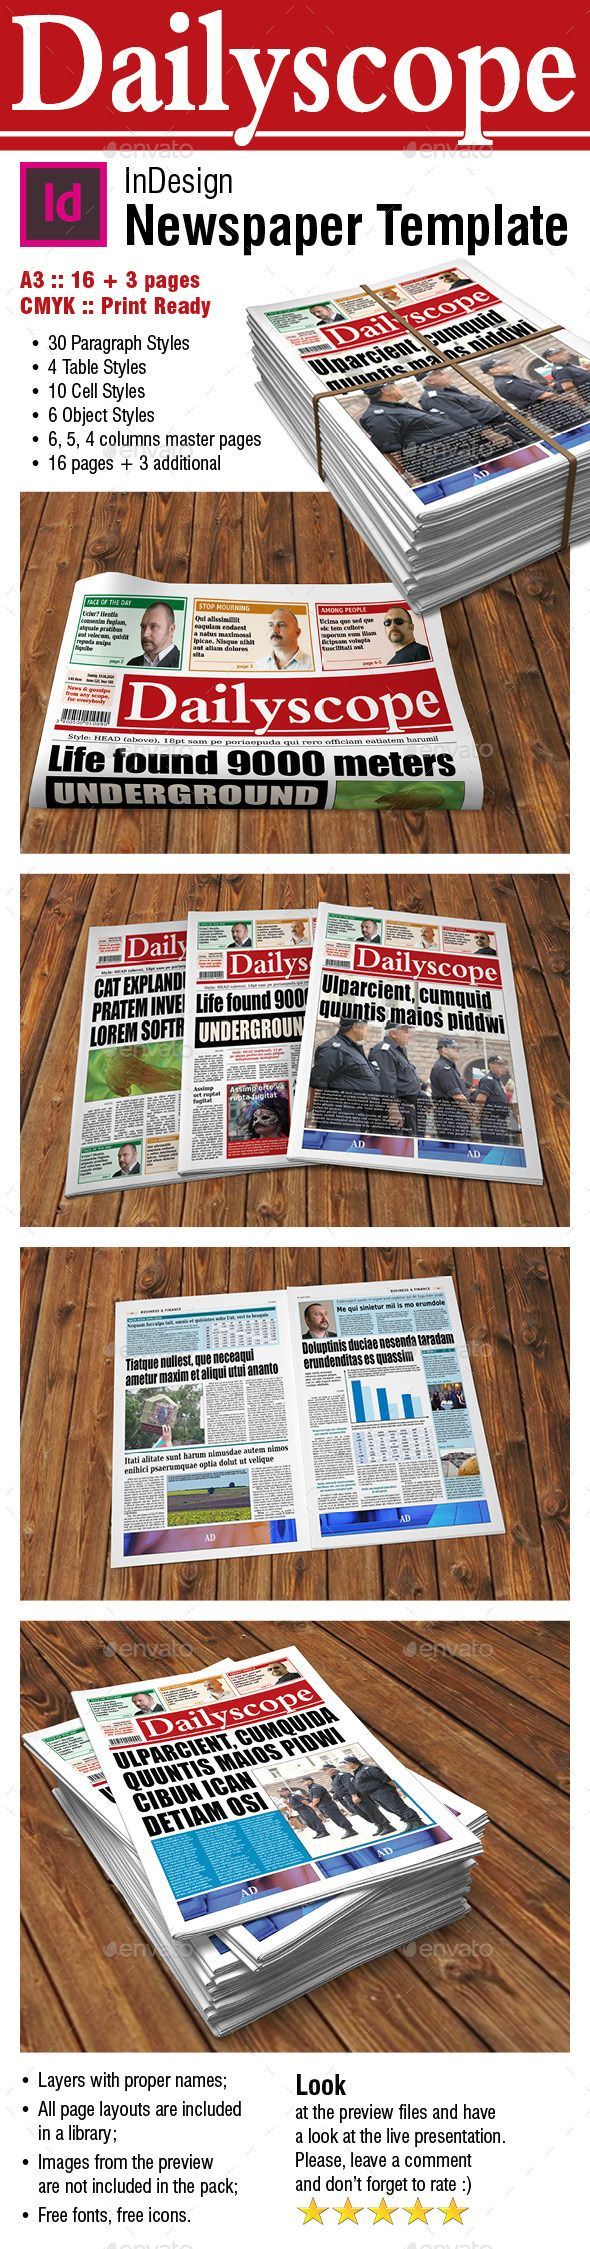 Dailyscope Newspaper Template 16 3 Pages Print Templates